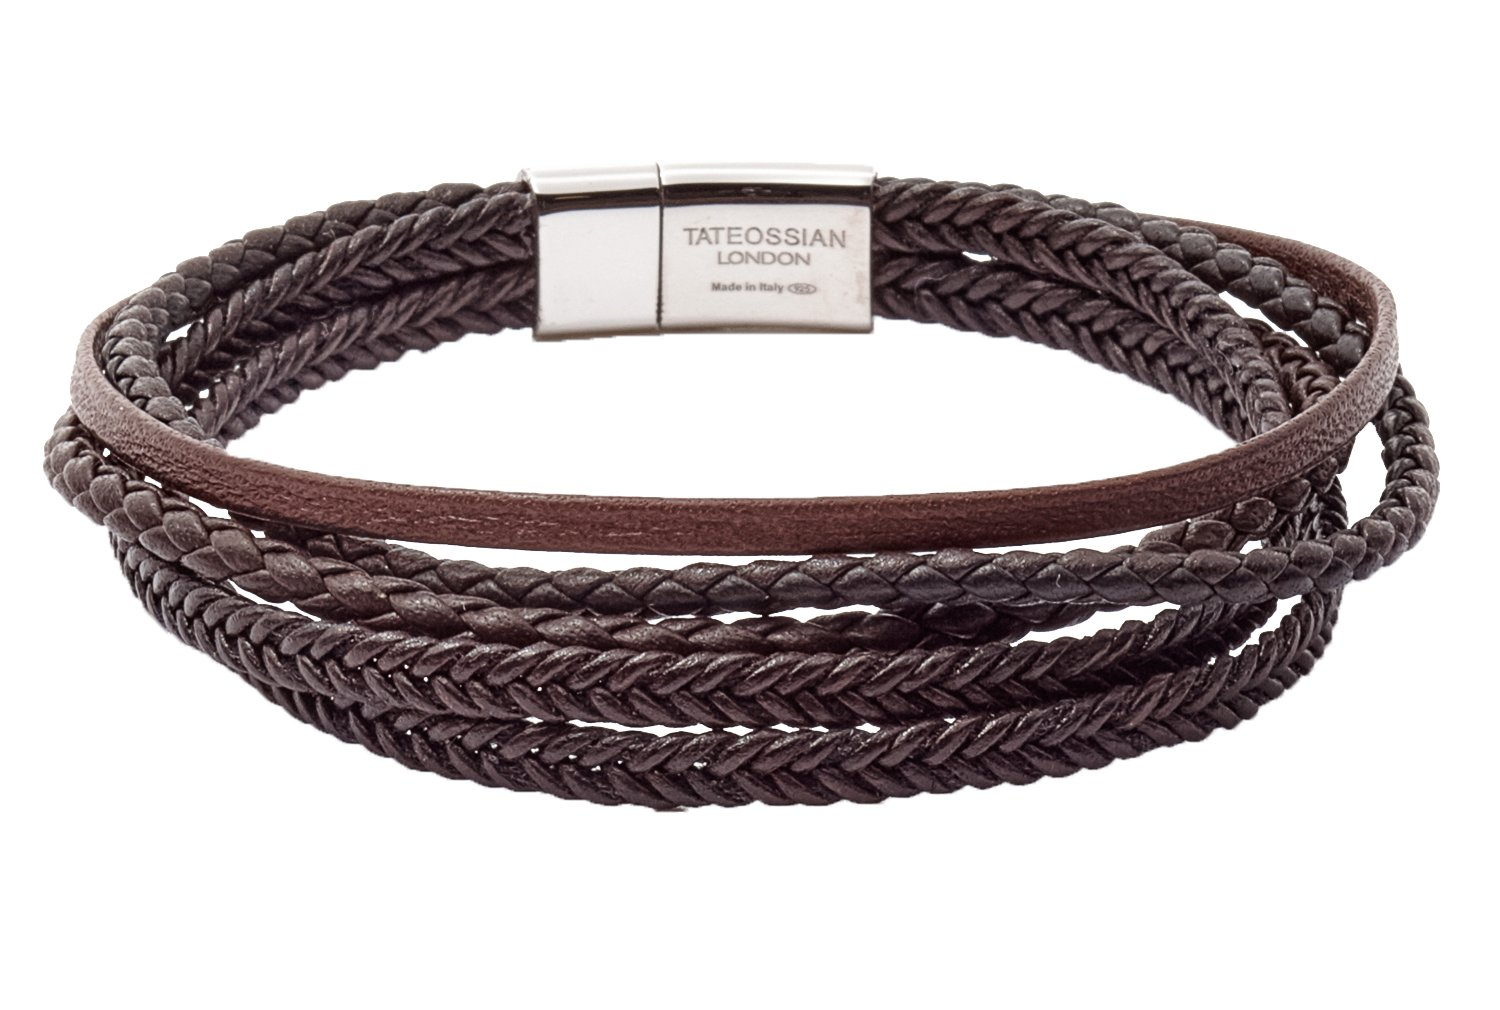 Tateossian Cobra Italian Leather Multi Strand Bracelet - Brown, Medium 18cm